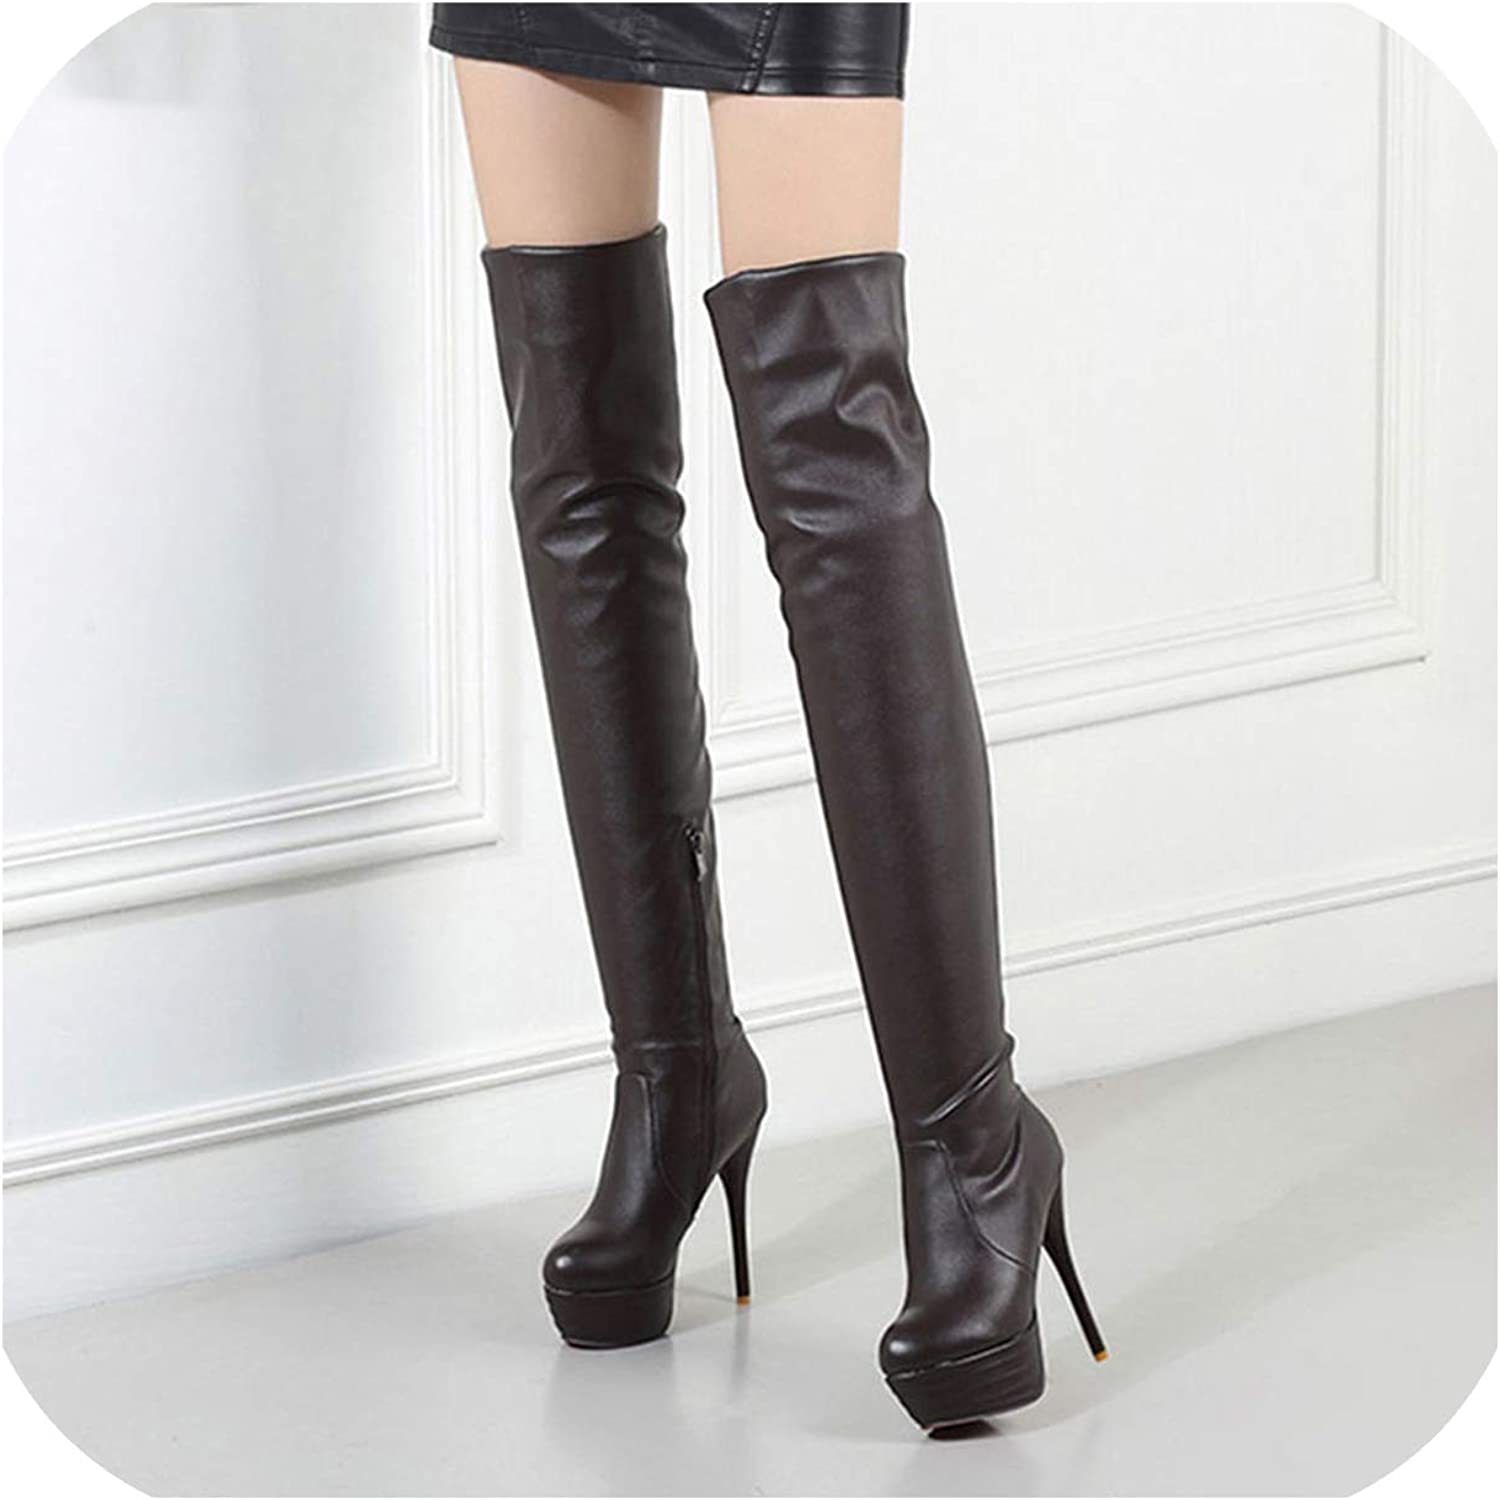 Thigh High Boots Size 12 Womens